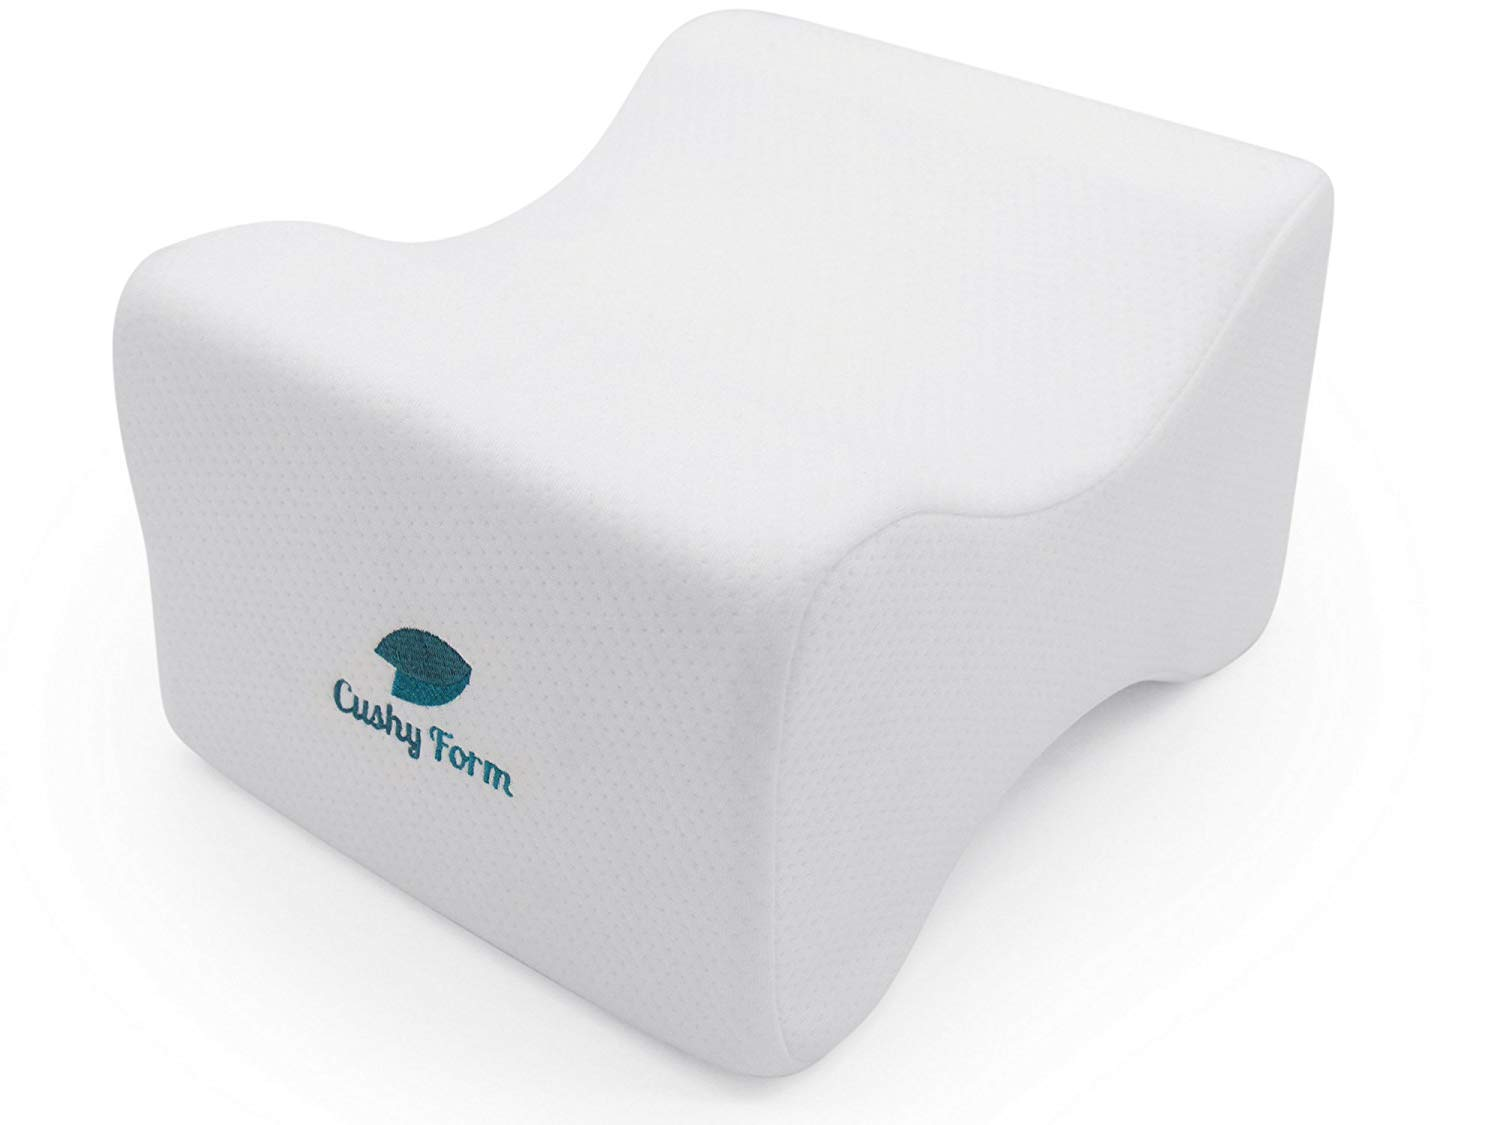 Get A Free Cushy Nerve Pain Relief Knee Pillow!